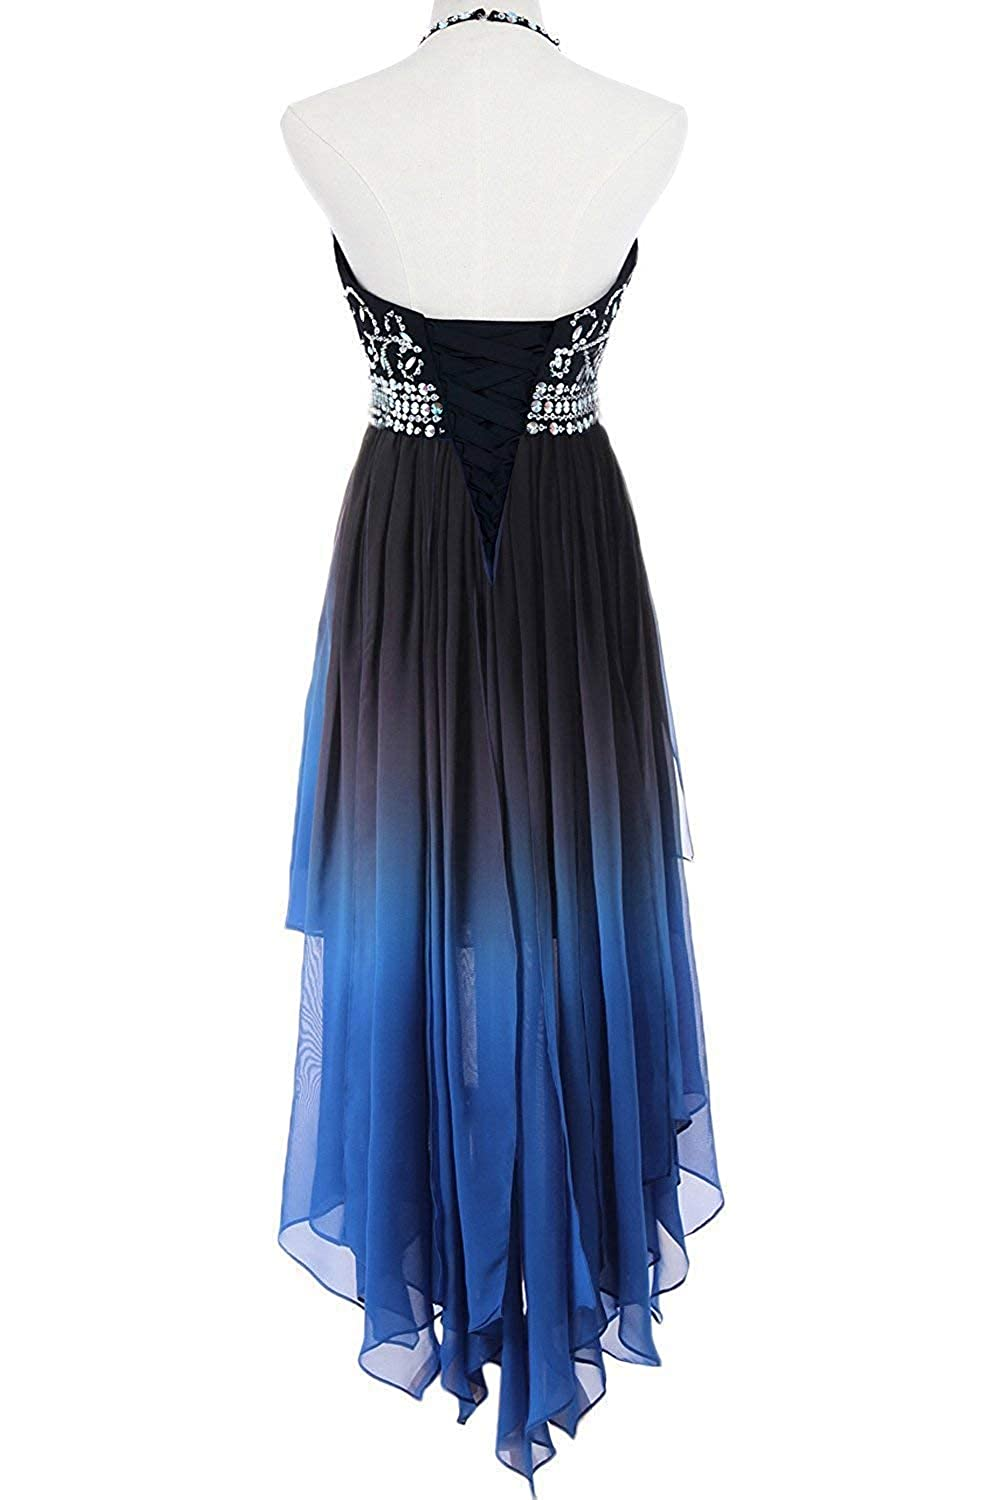 54db5bd74f3 FTBY Women s Ombre Homecoming Dresses Short Chiffon Prom Gown Gradient  Formal Beaded Cocktail Dress at Amazon Women s Clothing store